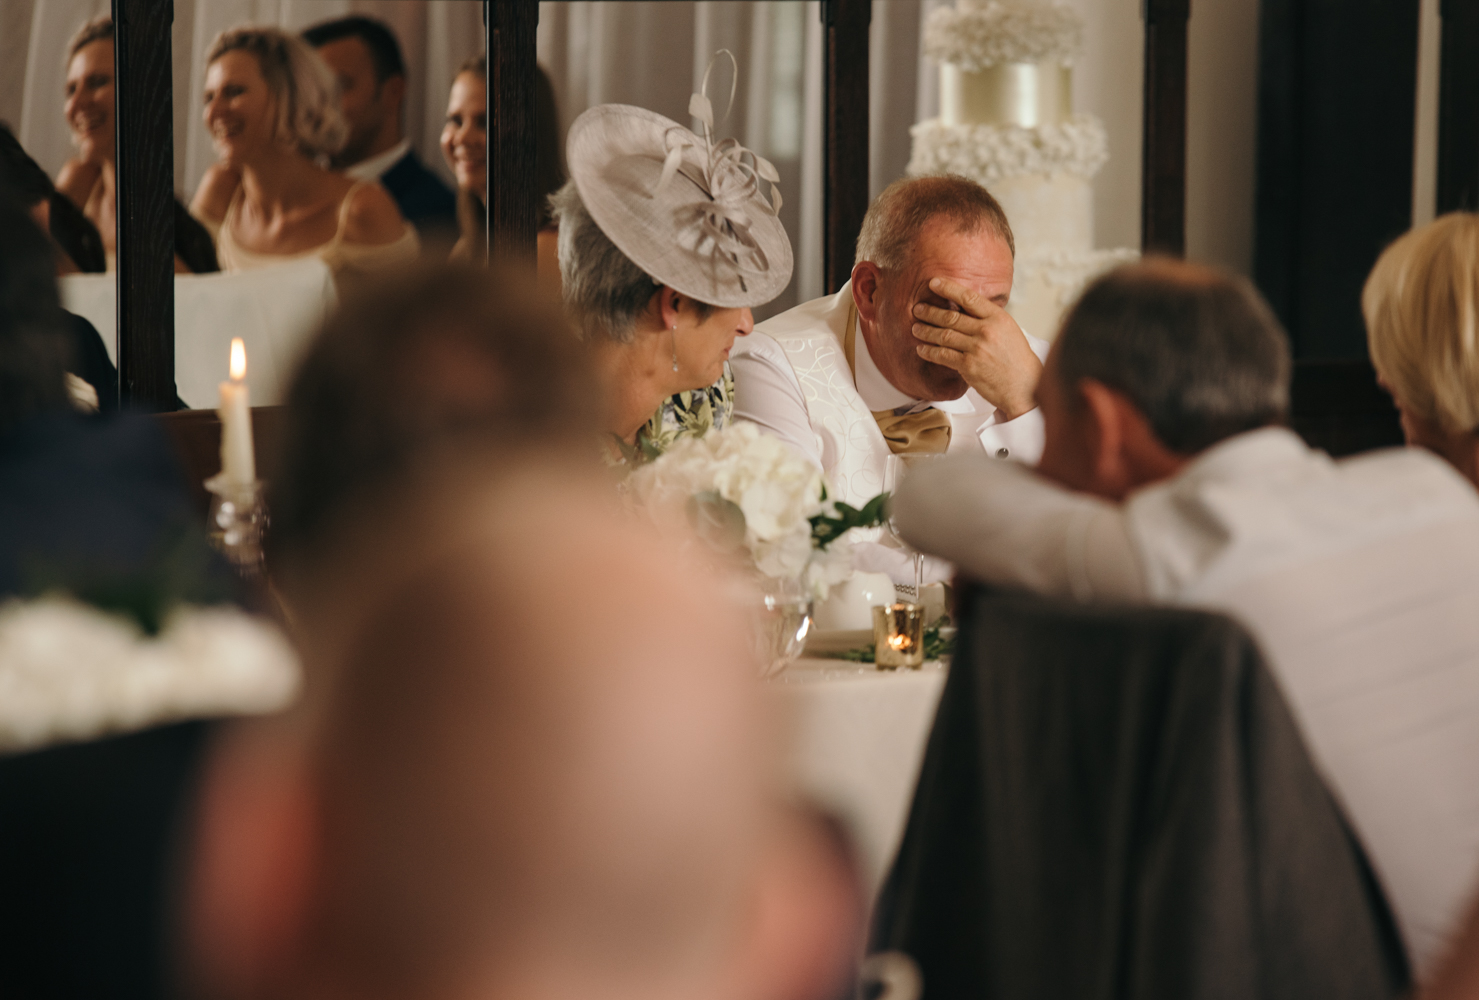 The grooms father hides his face in shame as one of his exploits are revealed during the stag weekend is revealed to the guests